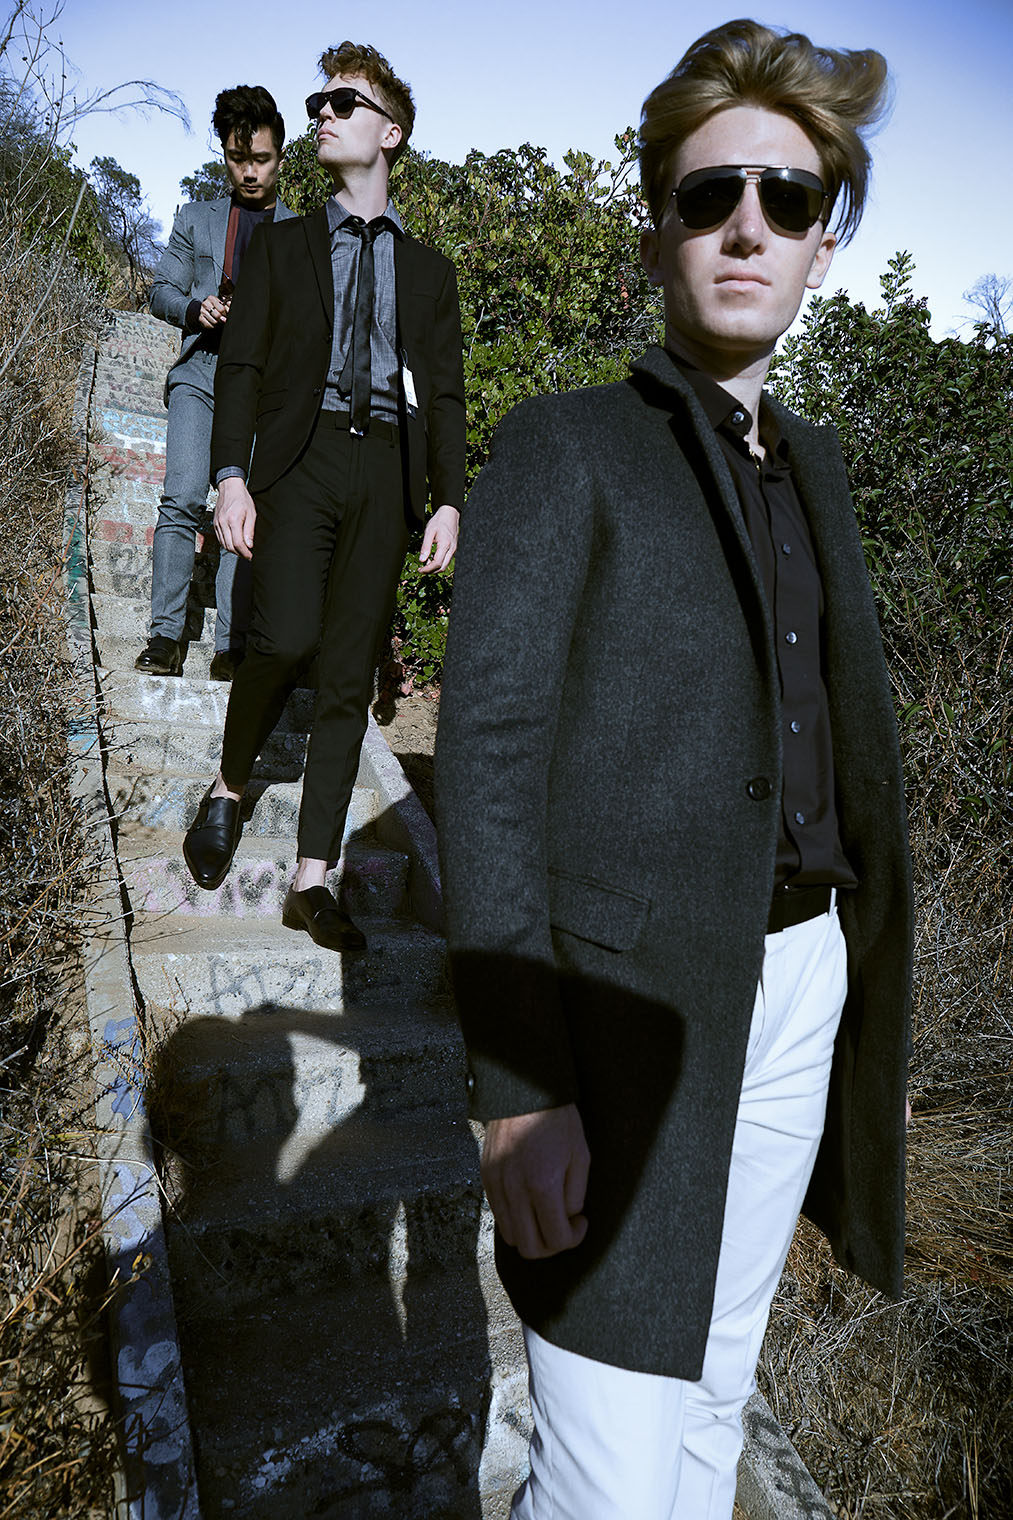 Three men at mens fashion and accessories editorial photoshoot in Los Angeles